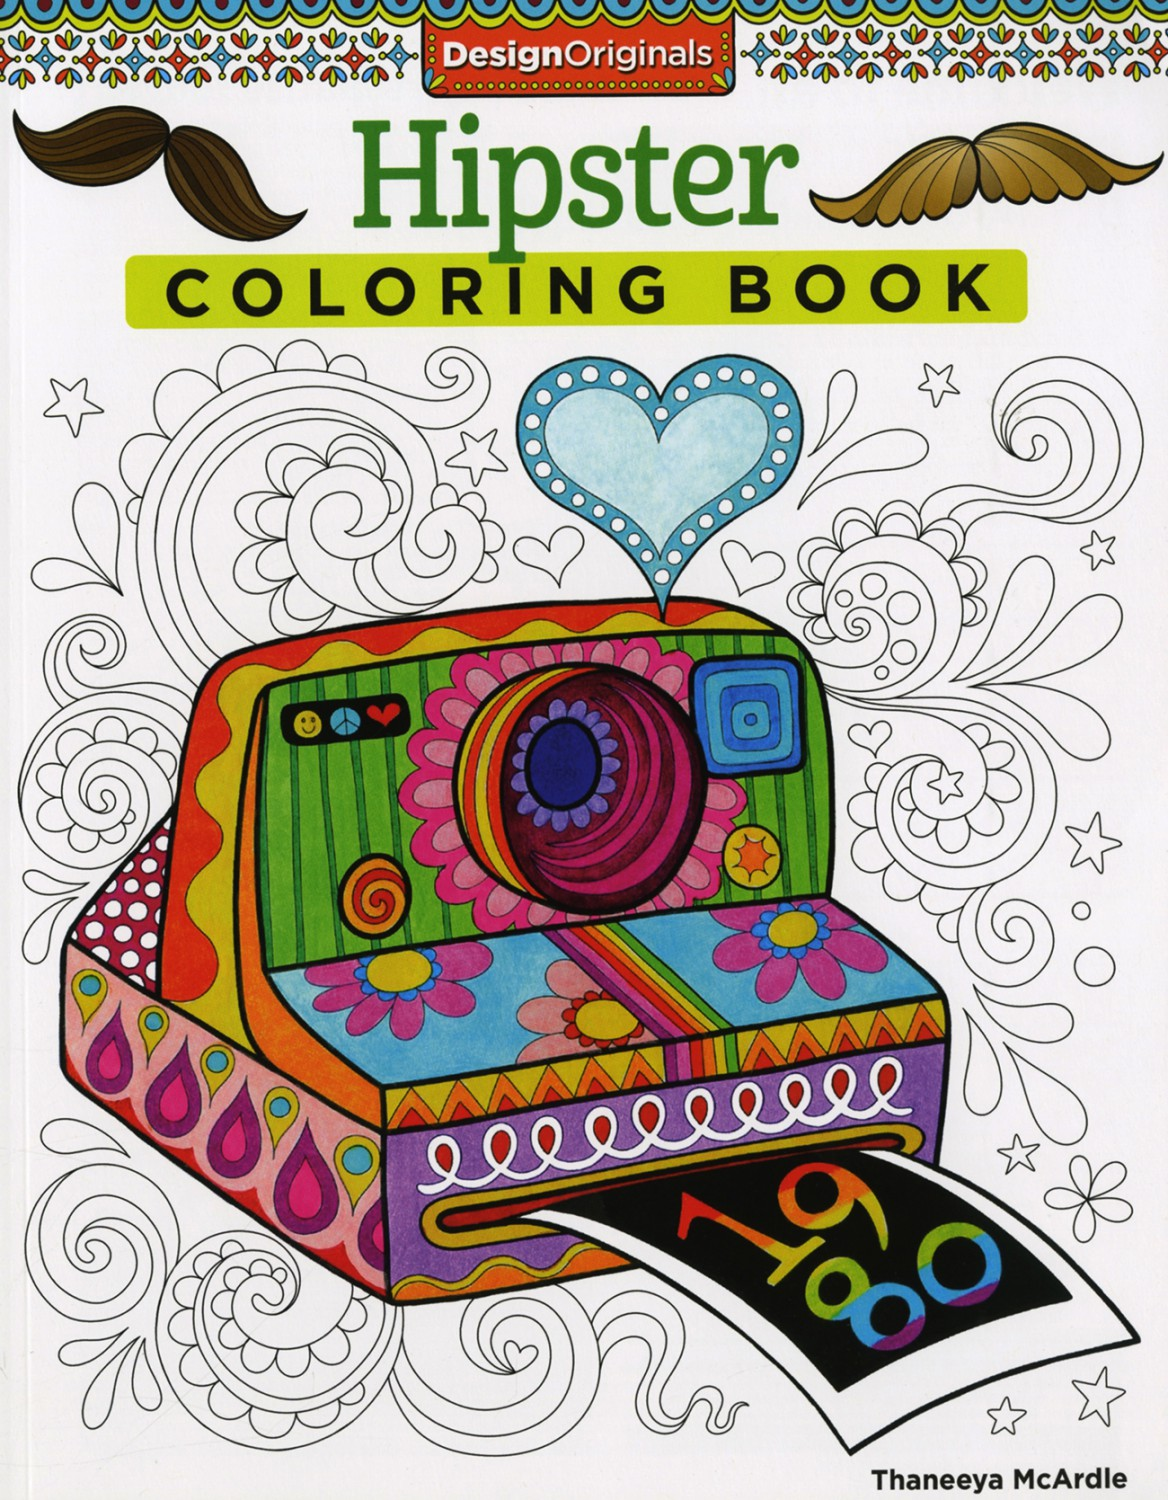 Design Originals HIPSTER Coloring Book DO5499 995 Each